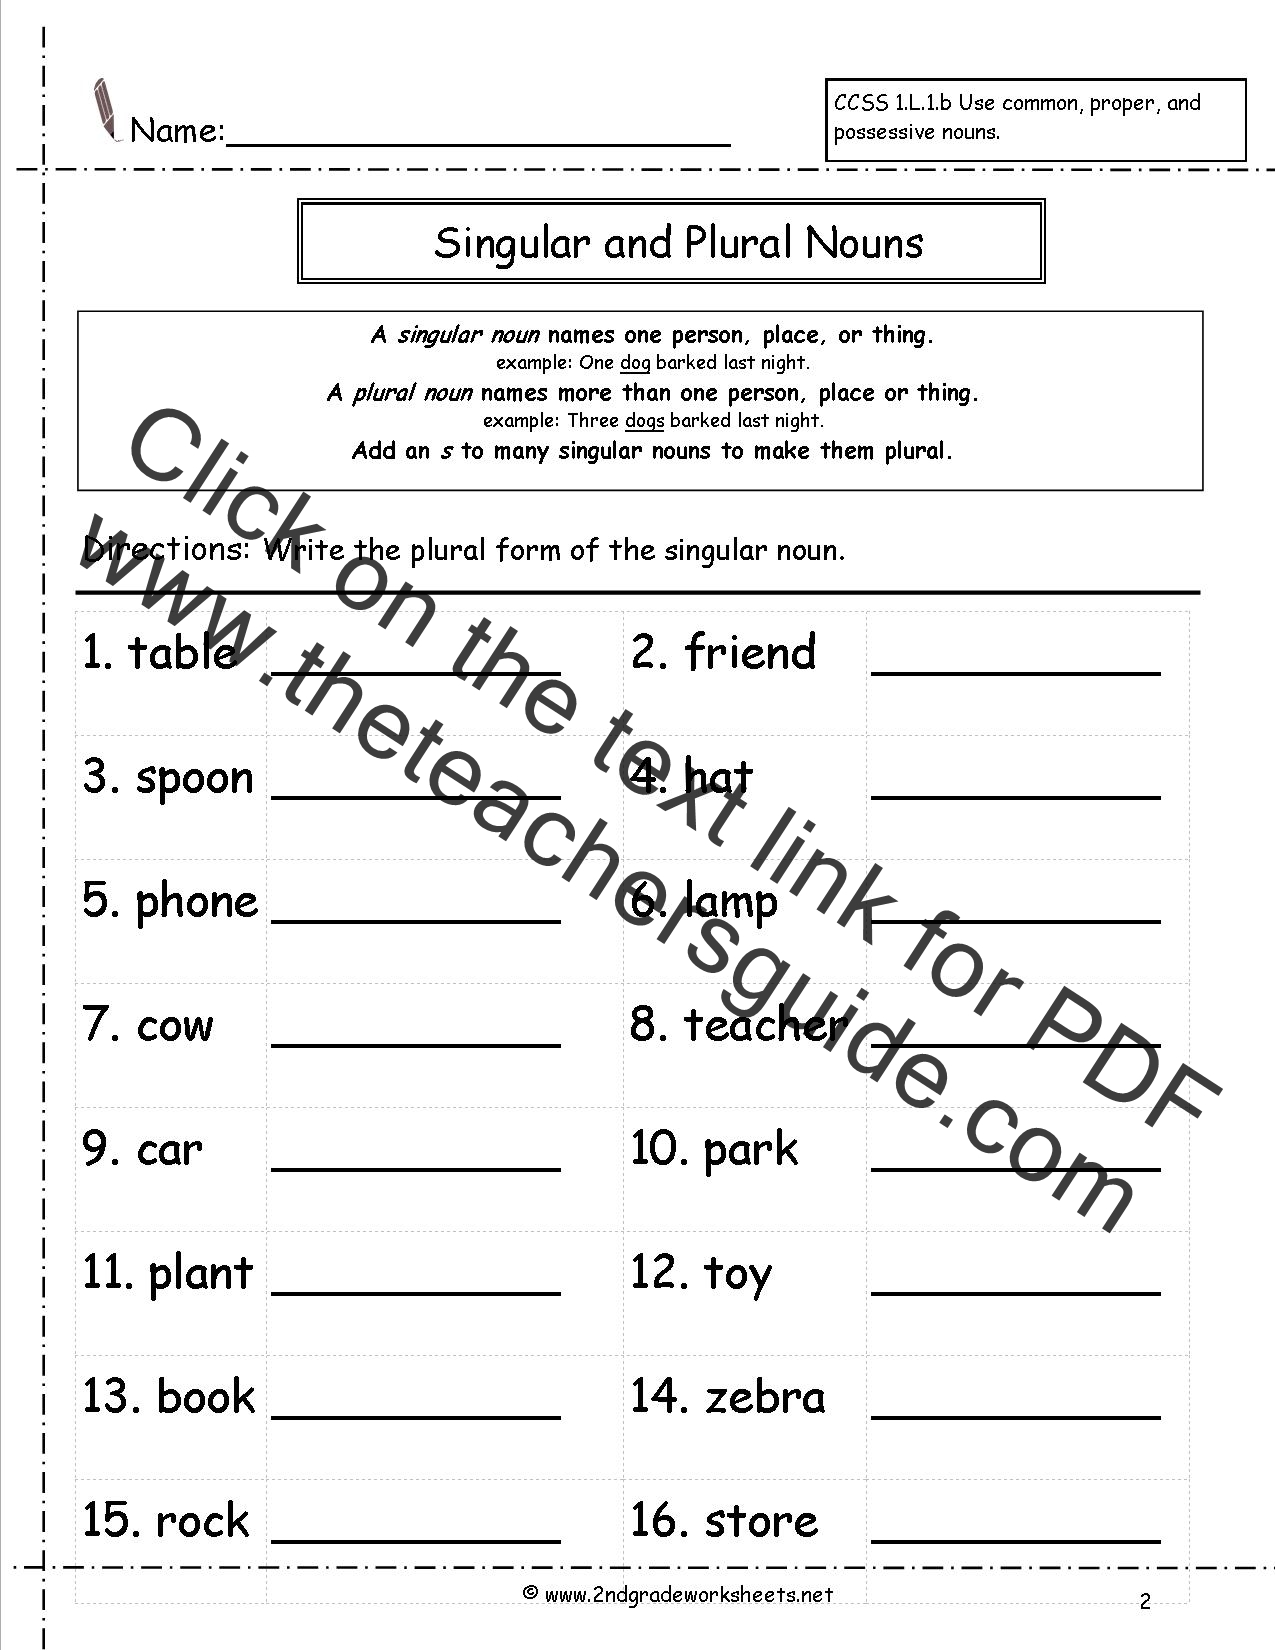 Worksheets Irregular Plurals Worksheet singular and plural nouns worksheets